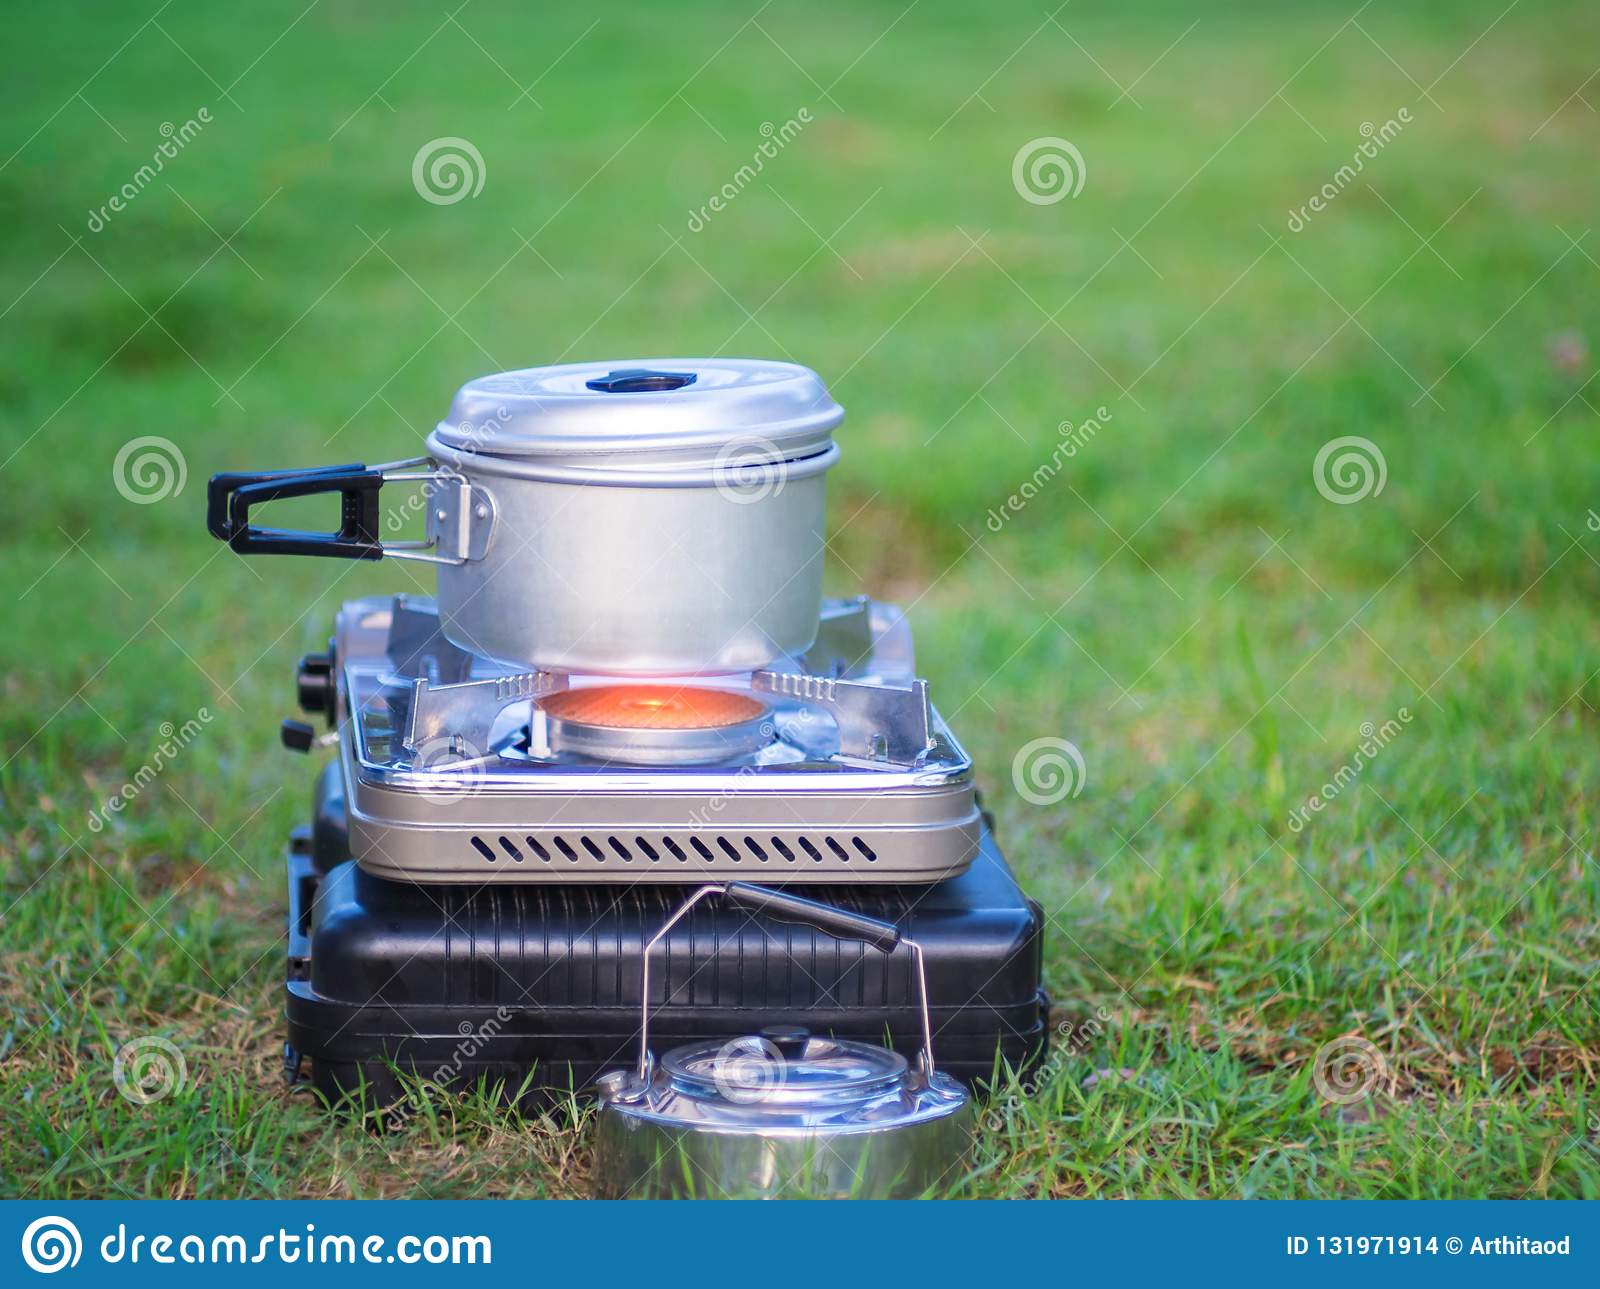 Peachy Pot Stands On A Portable Gas Stove Cooking On Camping Interior Design Ideas Clesiryabchikinfo